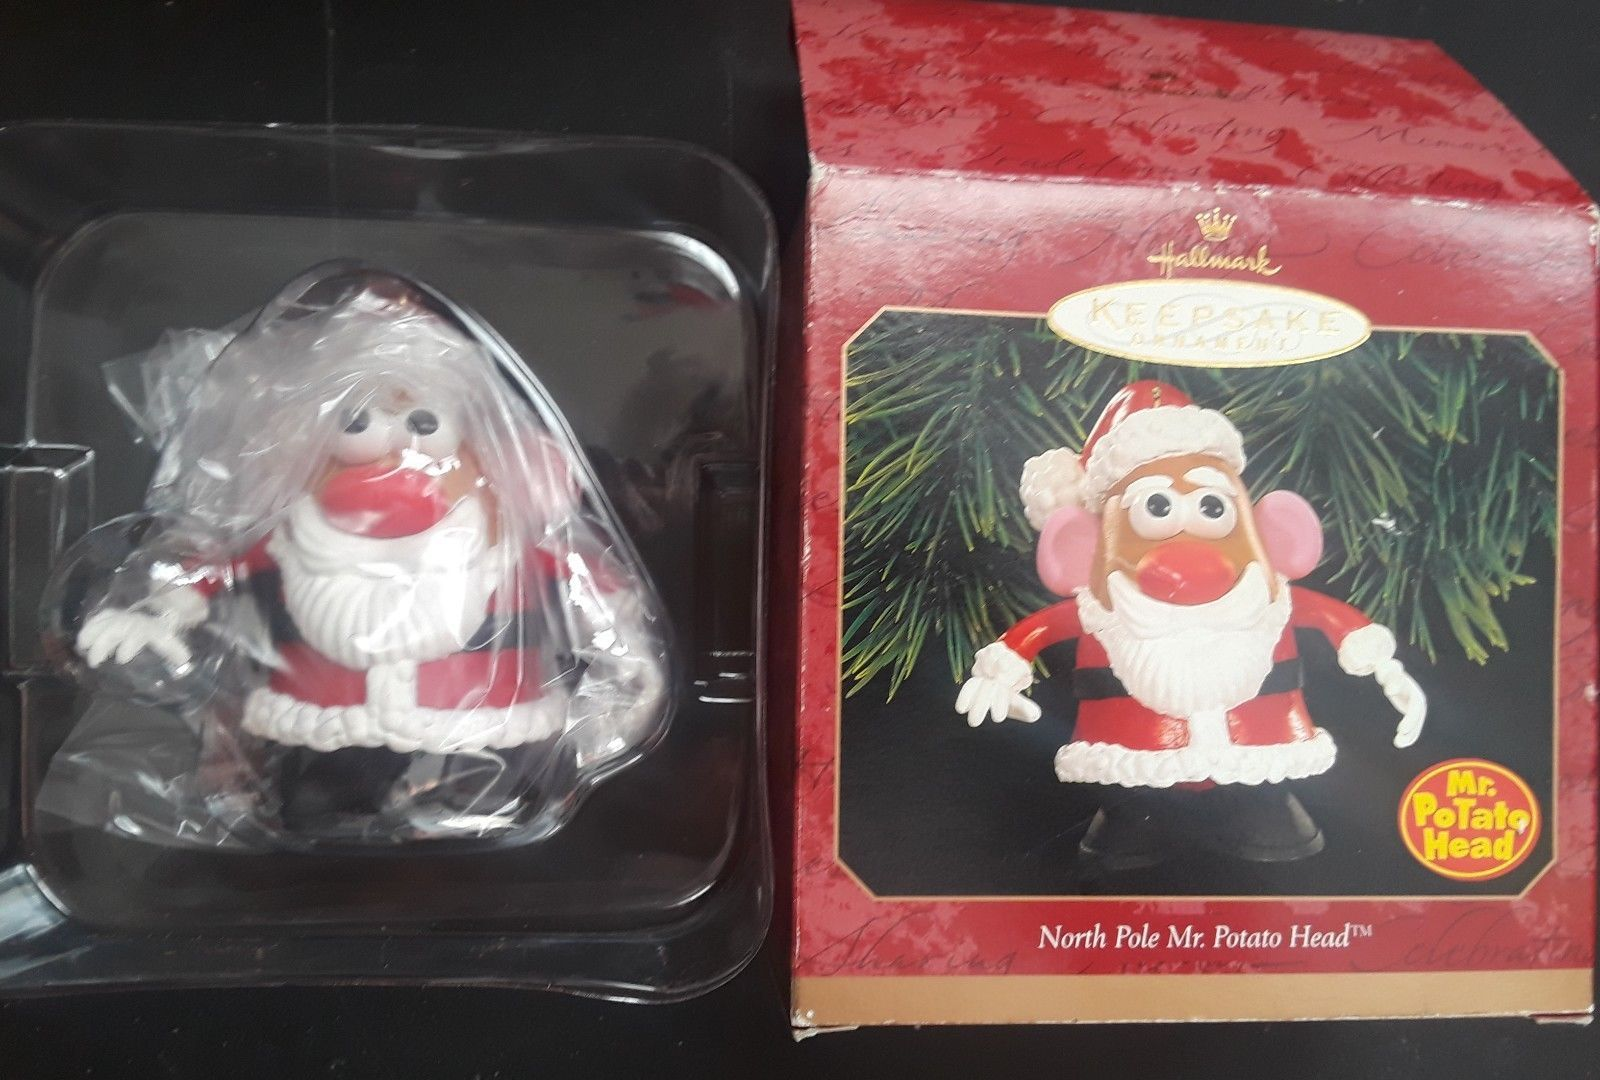 Hallmark Northpole Mr. Potato Head Santa Claus Ornament Christmas Holiday 1999